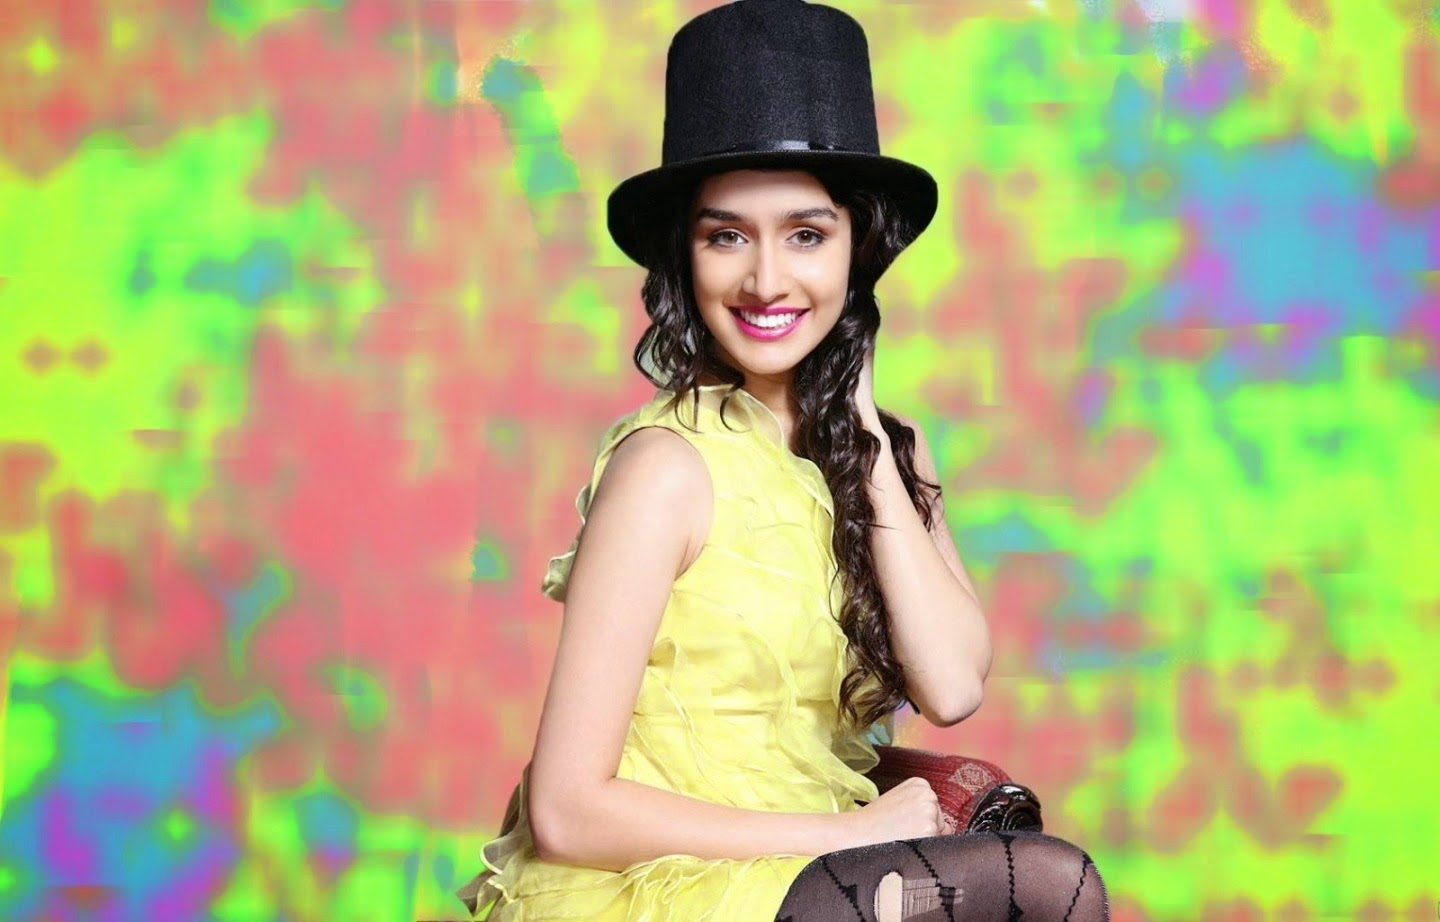 shraddha kapoor hd wallpapers bollywood actresses hd wallpapers hd 1440x922